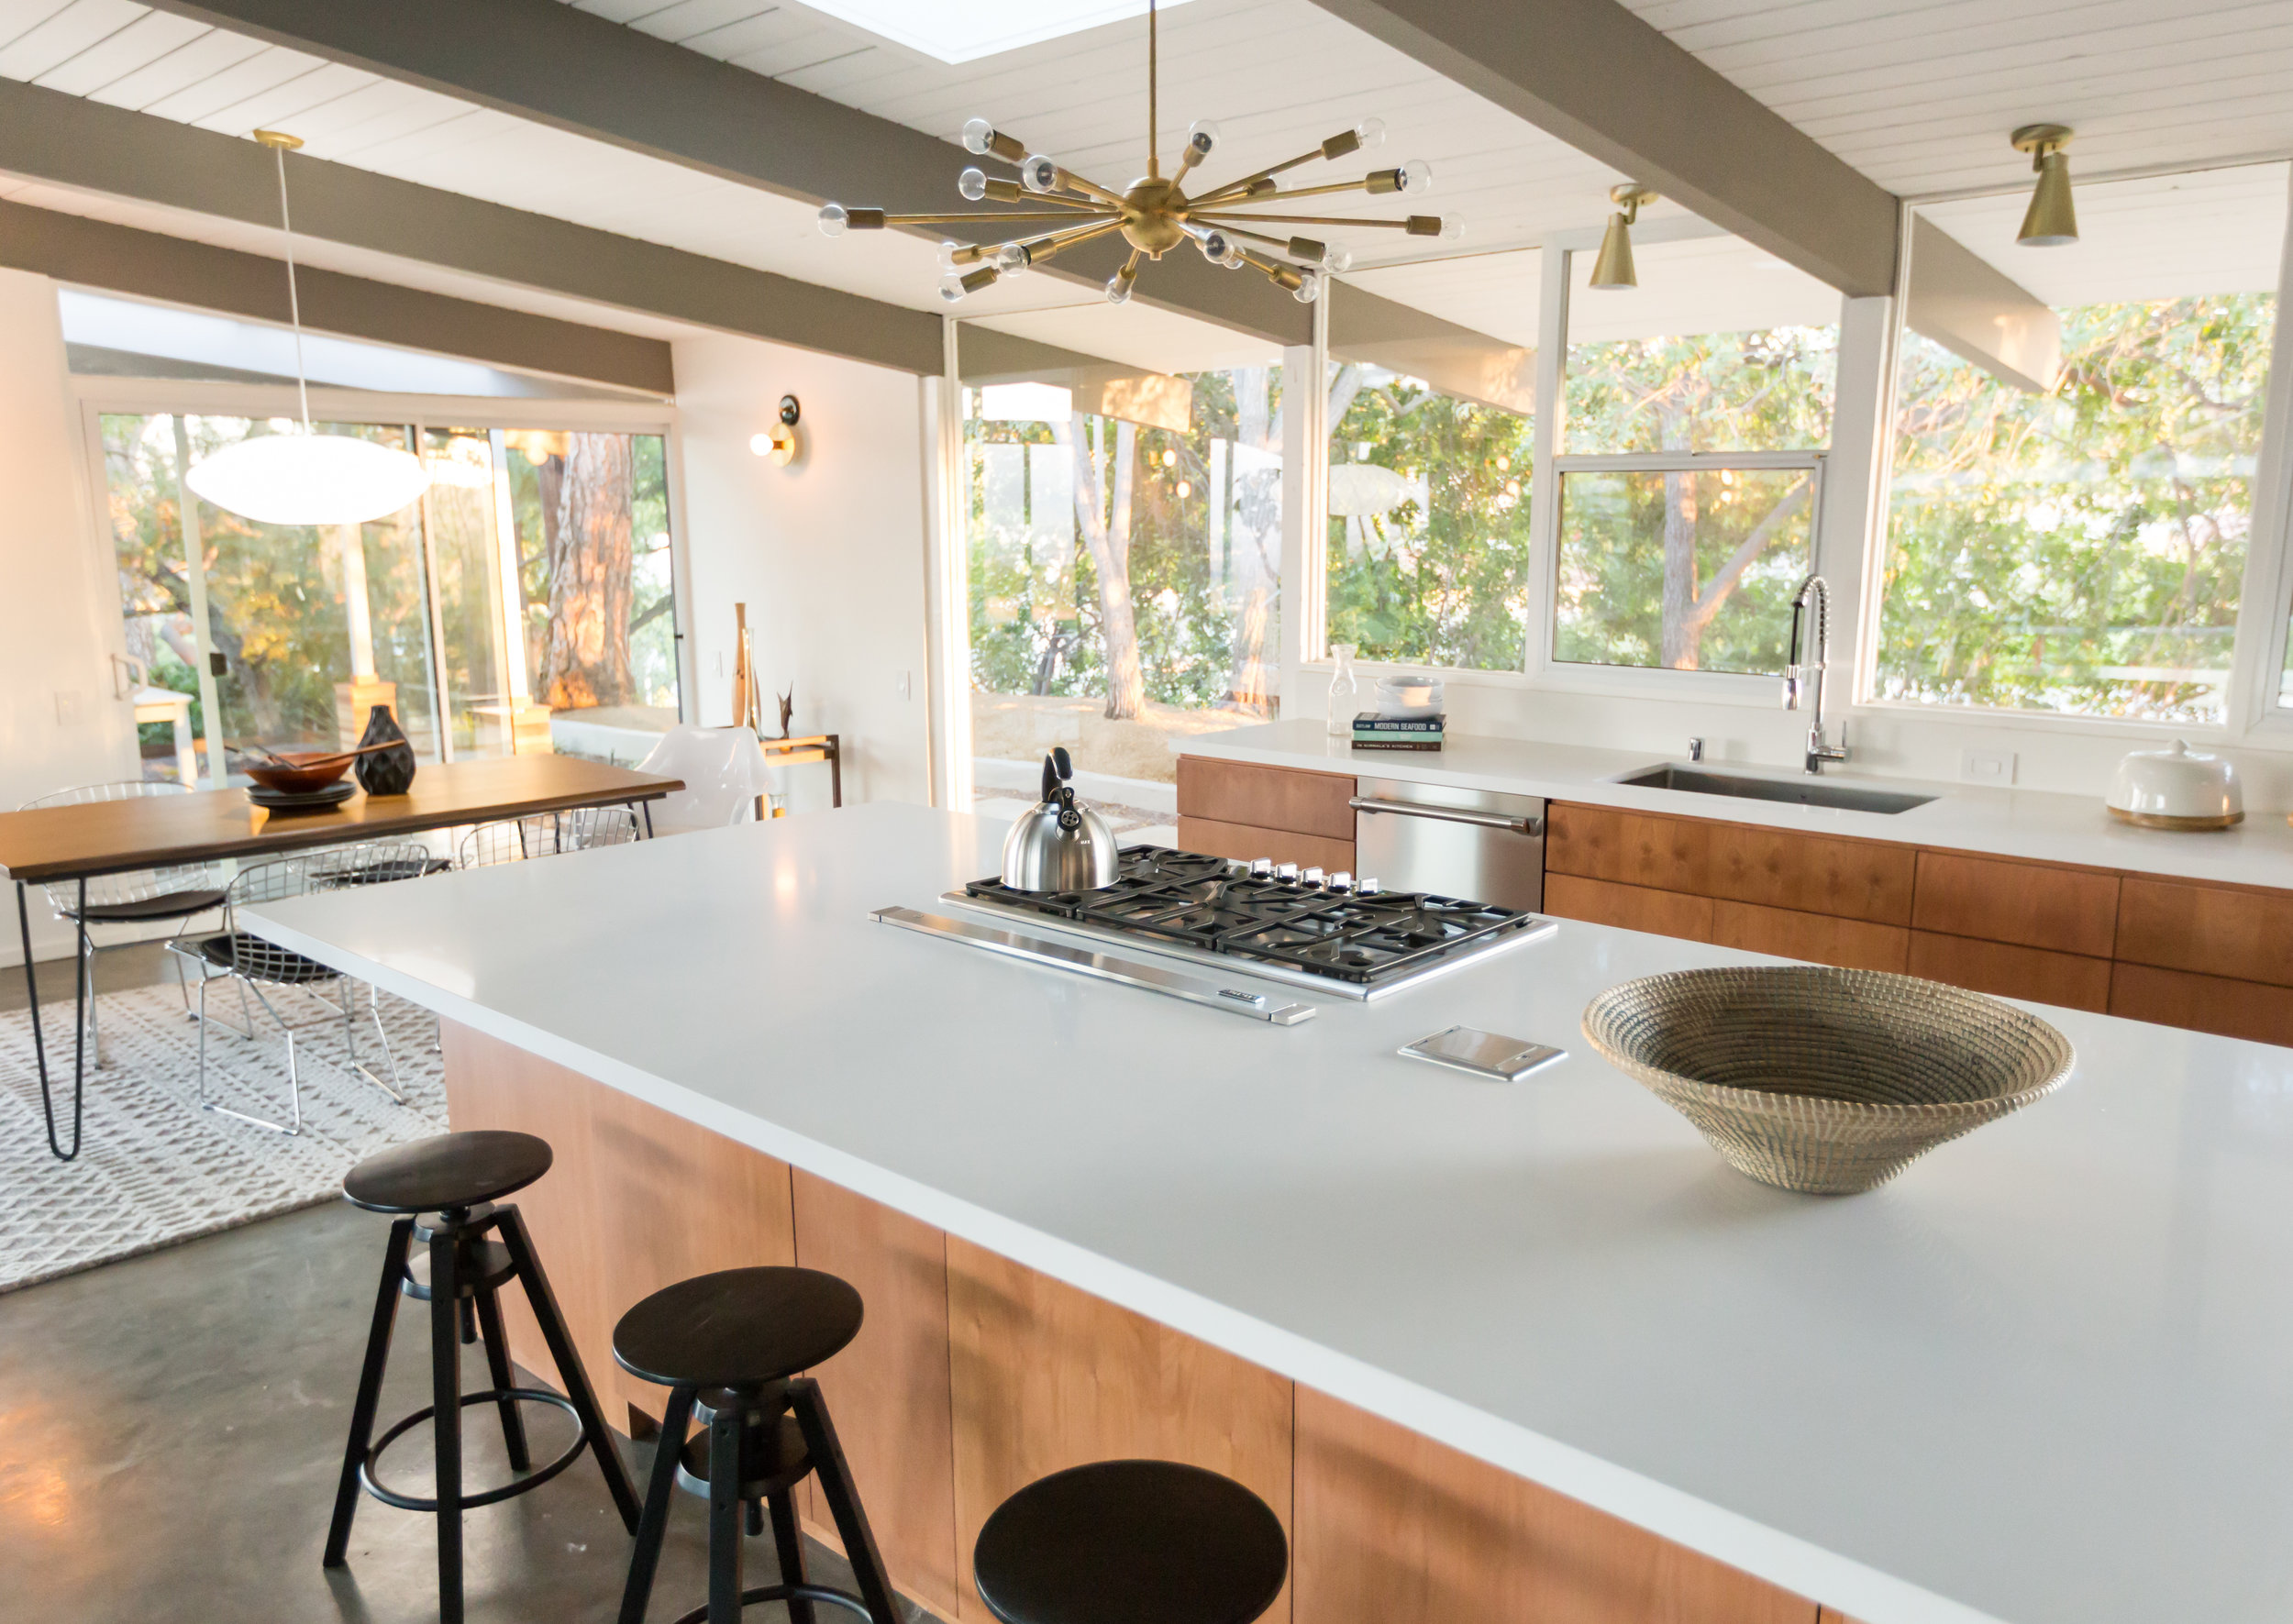 This kitchen. This view. That pendant. Sign us up, please!